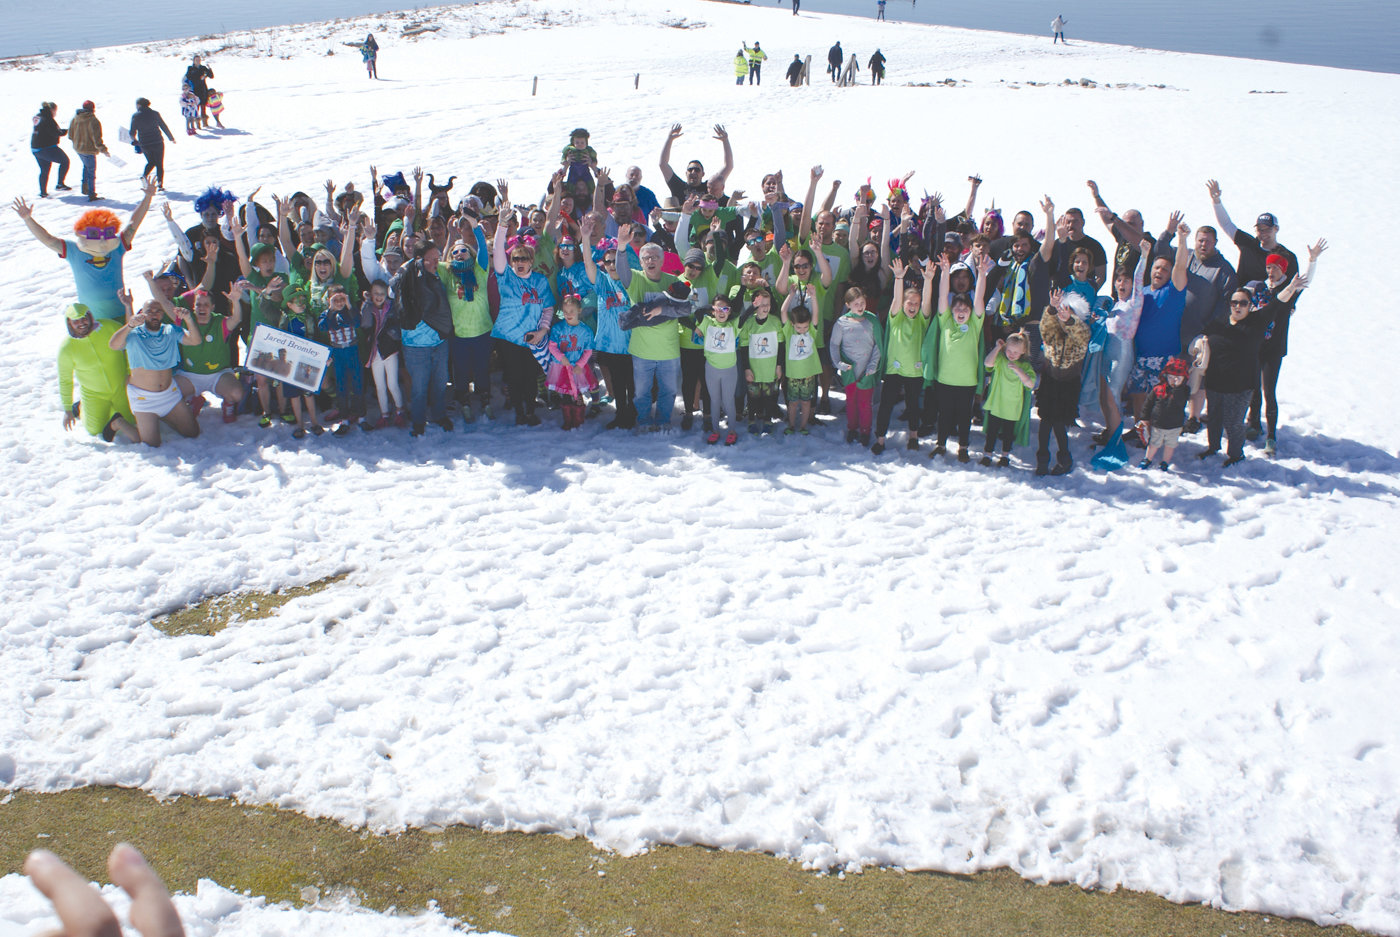 GROUP EFFORT: At last Saturday's Plunge for Preemies to benefit Project Sweet Peas, 130 people of all ages participated in the plunge at the Warwick Country Club. They walked through a snow-covered beach and then took the plunge in 38-degree water.